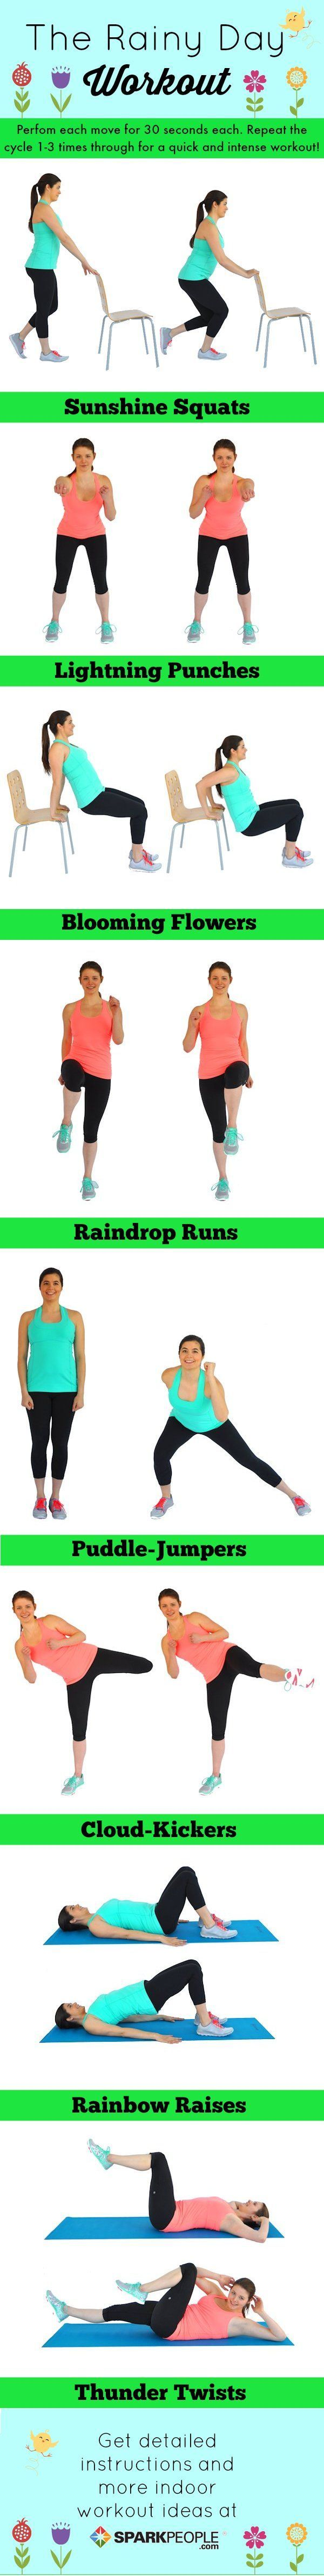 This spring-themed workout routine is the perfect way to sculpt your muscles, burn fat and get healthy at home without any equipment!